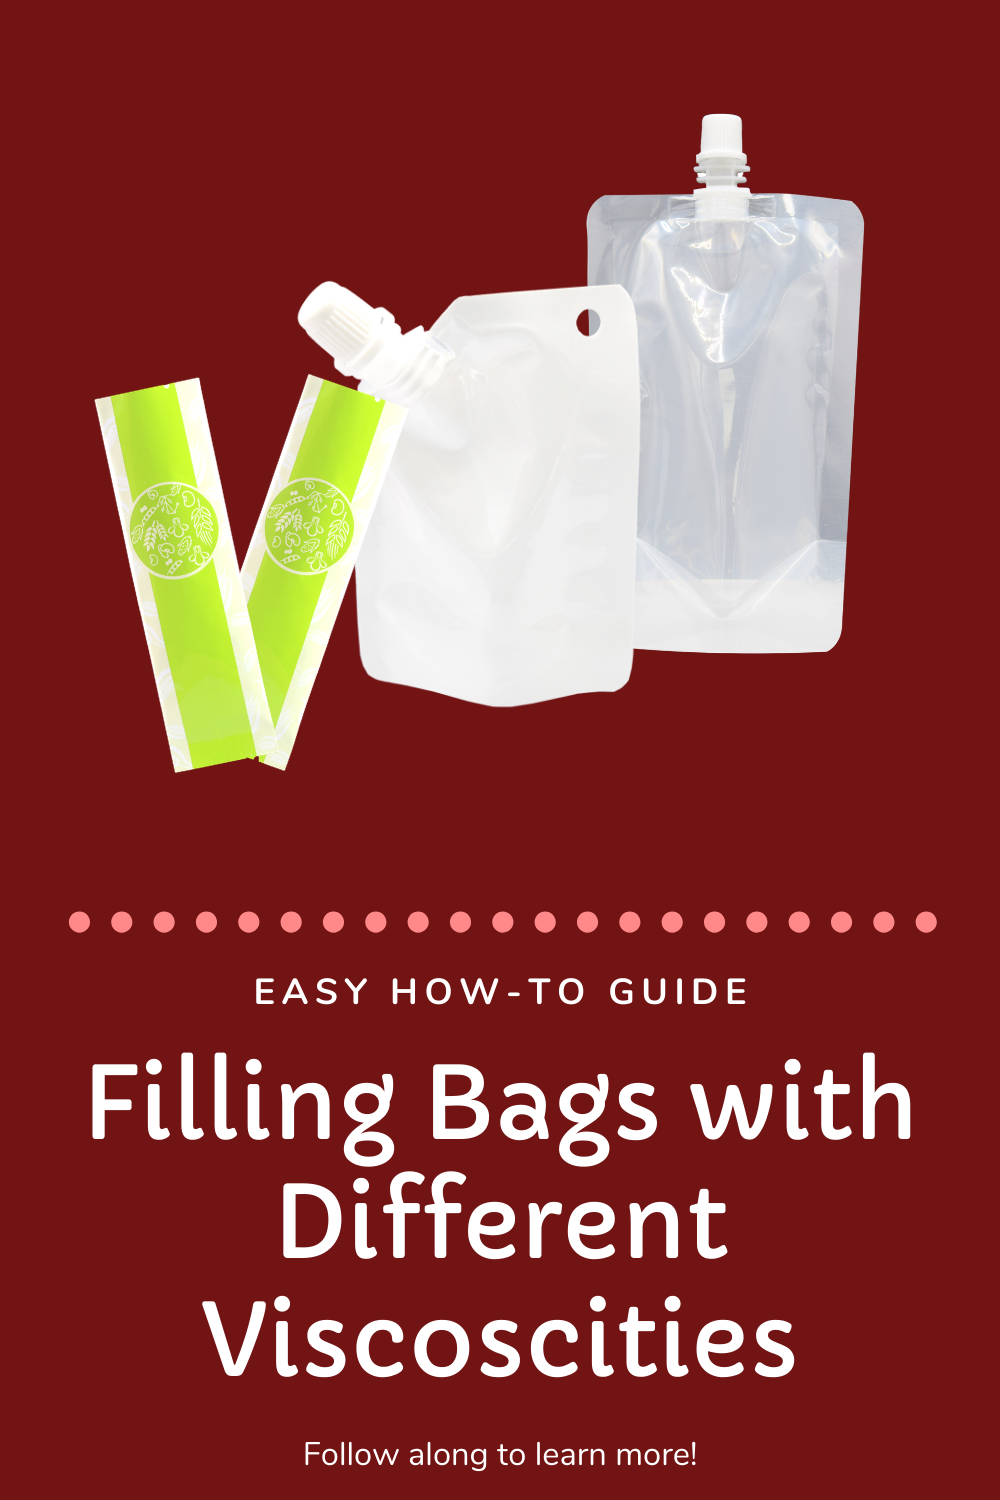 Filling Bags with Different Viscosities